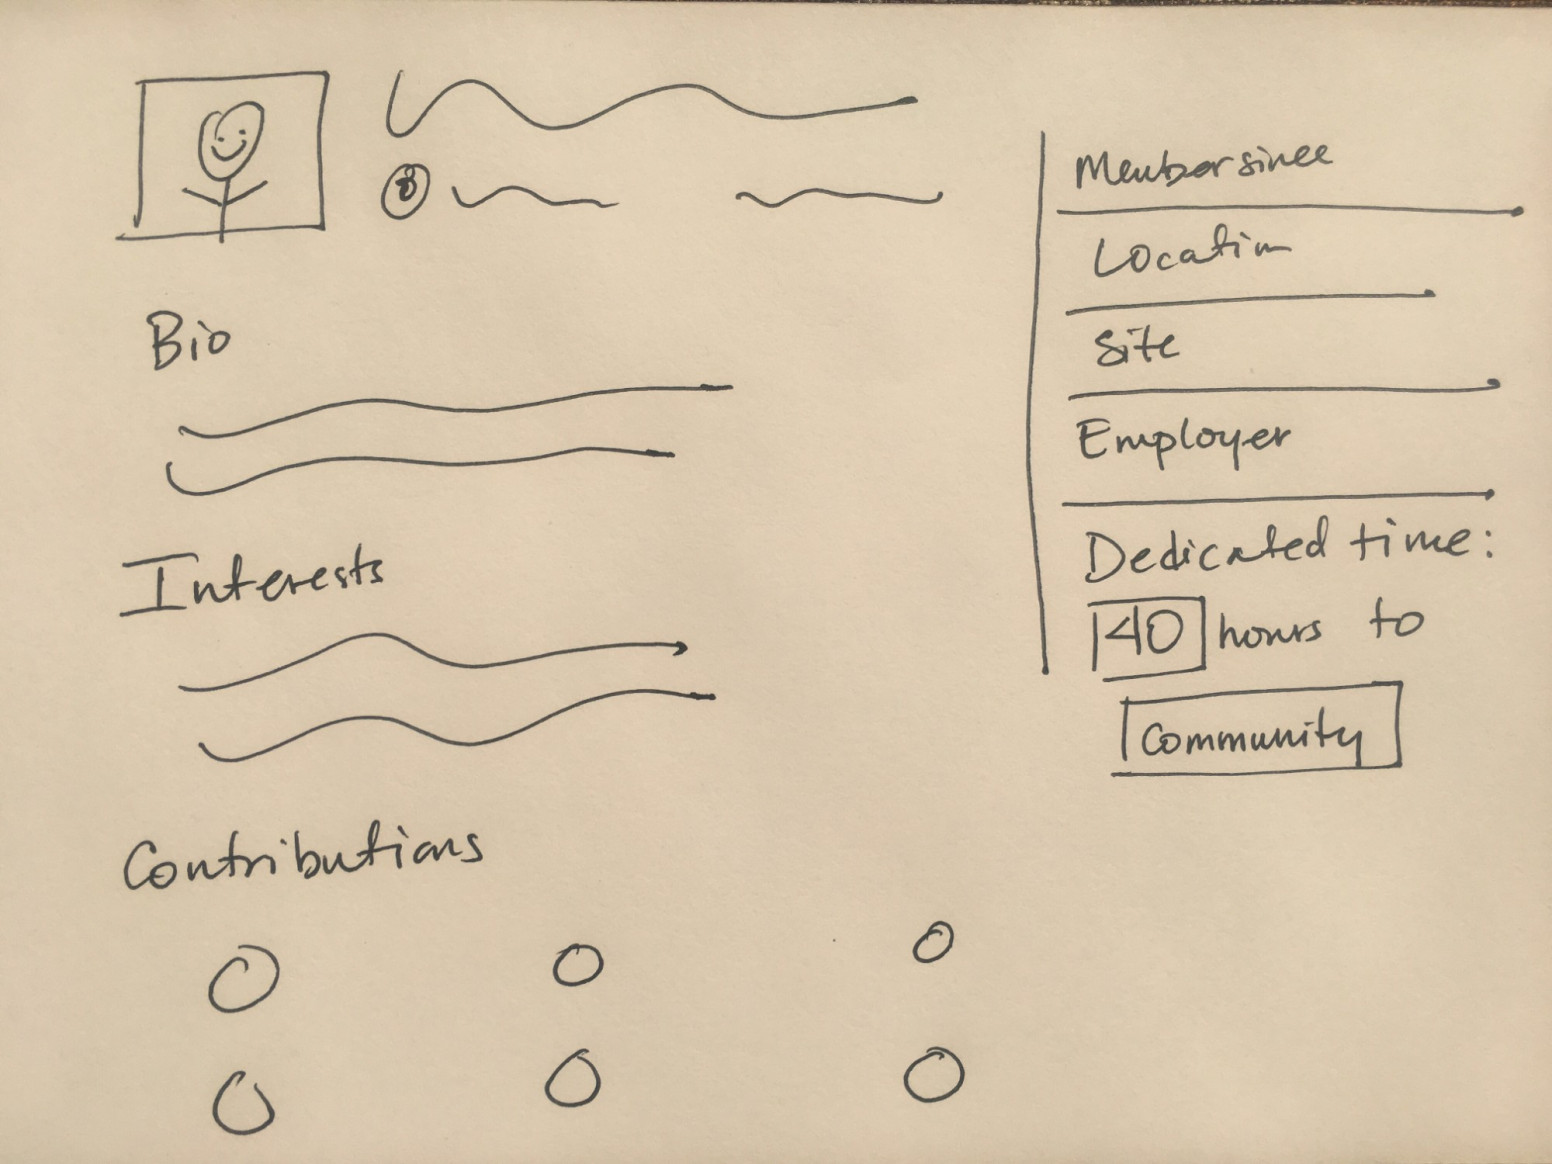 """A hand-sketched example of a WordPress.org profile, with the added feature of a section on the right-aligned sidebar that says """"Dedicated time: (box with """"40"""" inside it) hours to (box with """"community"""" inside it)."""